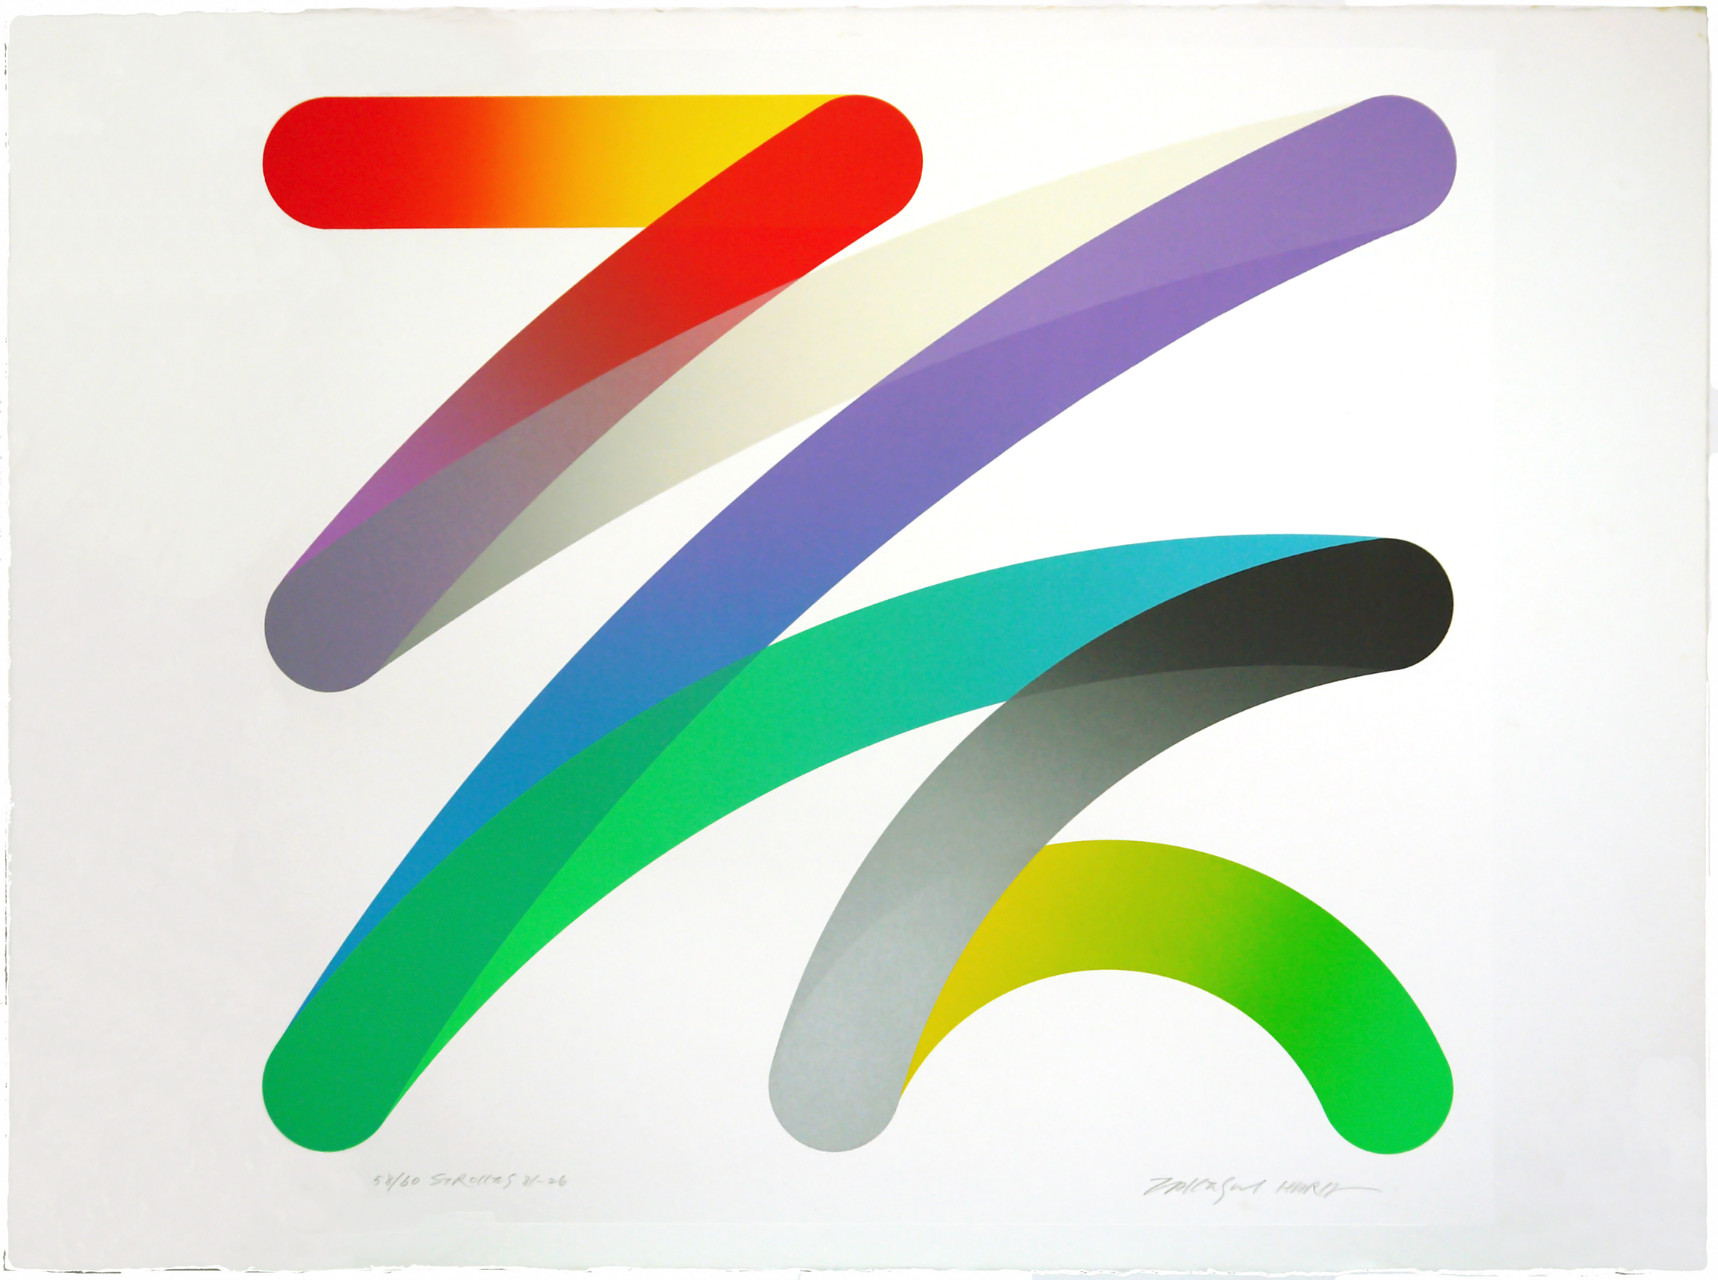 Hara Takeshi from the strokes collection Abstract